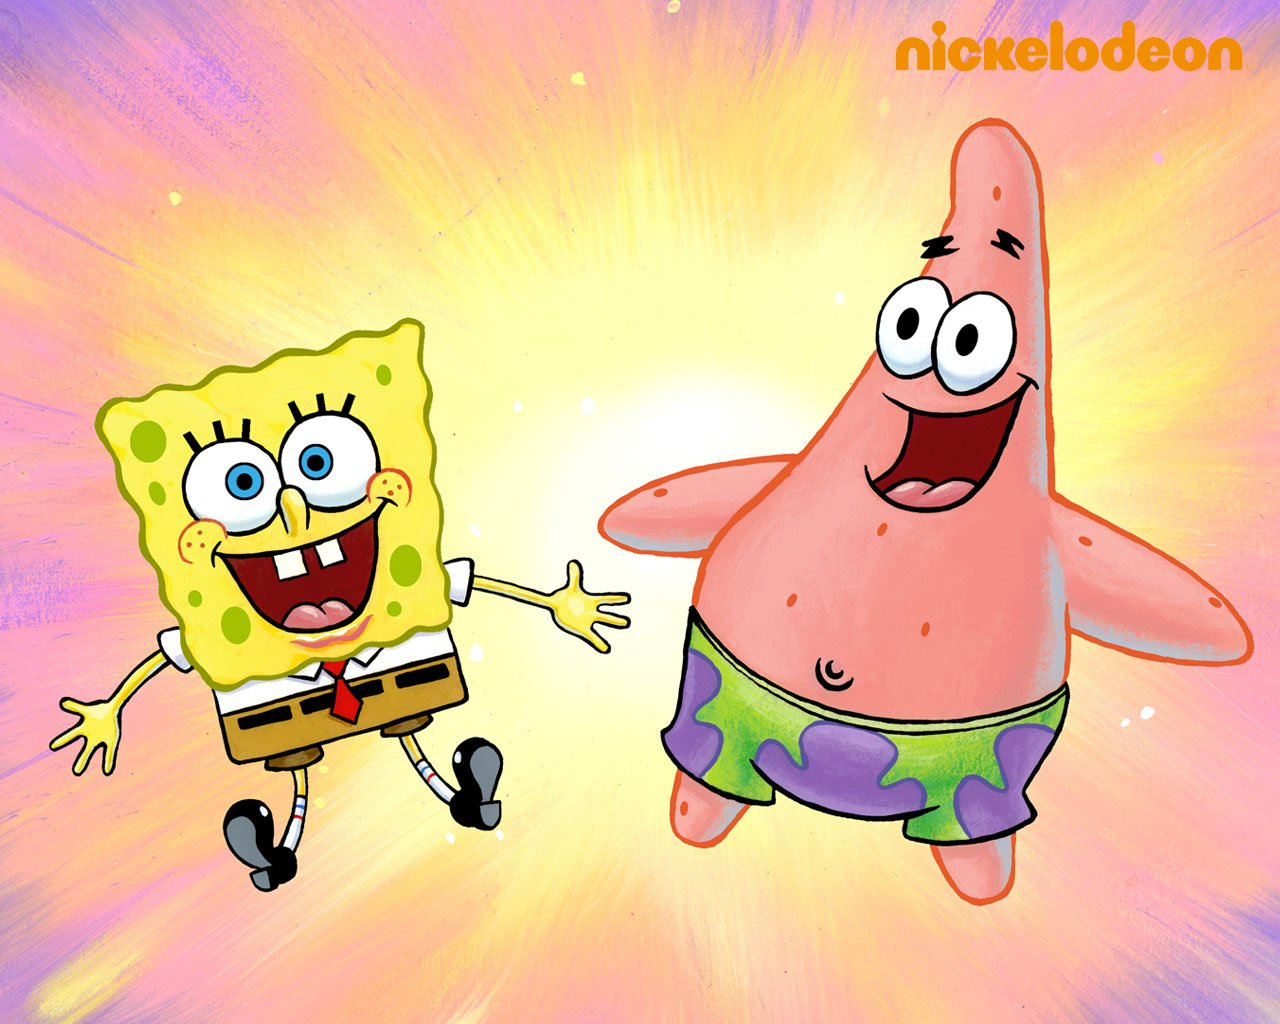 Free Download Spongebob Patrick Spongebob Squarepants And Patrick Star 1280x1024 For Your Desktop Mobile Tablet Explore 77 Spongebob Squarepants And Patrick Wallpaper Spongebob Wallpapers Gambar Spongebob Squarepants Wallpaper